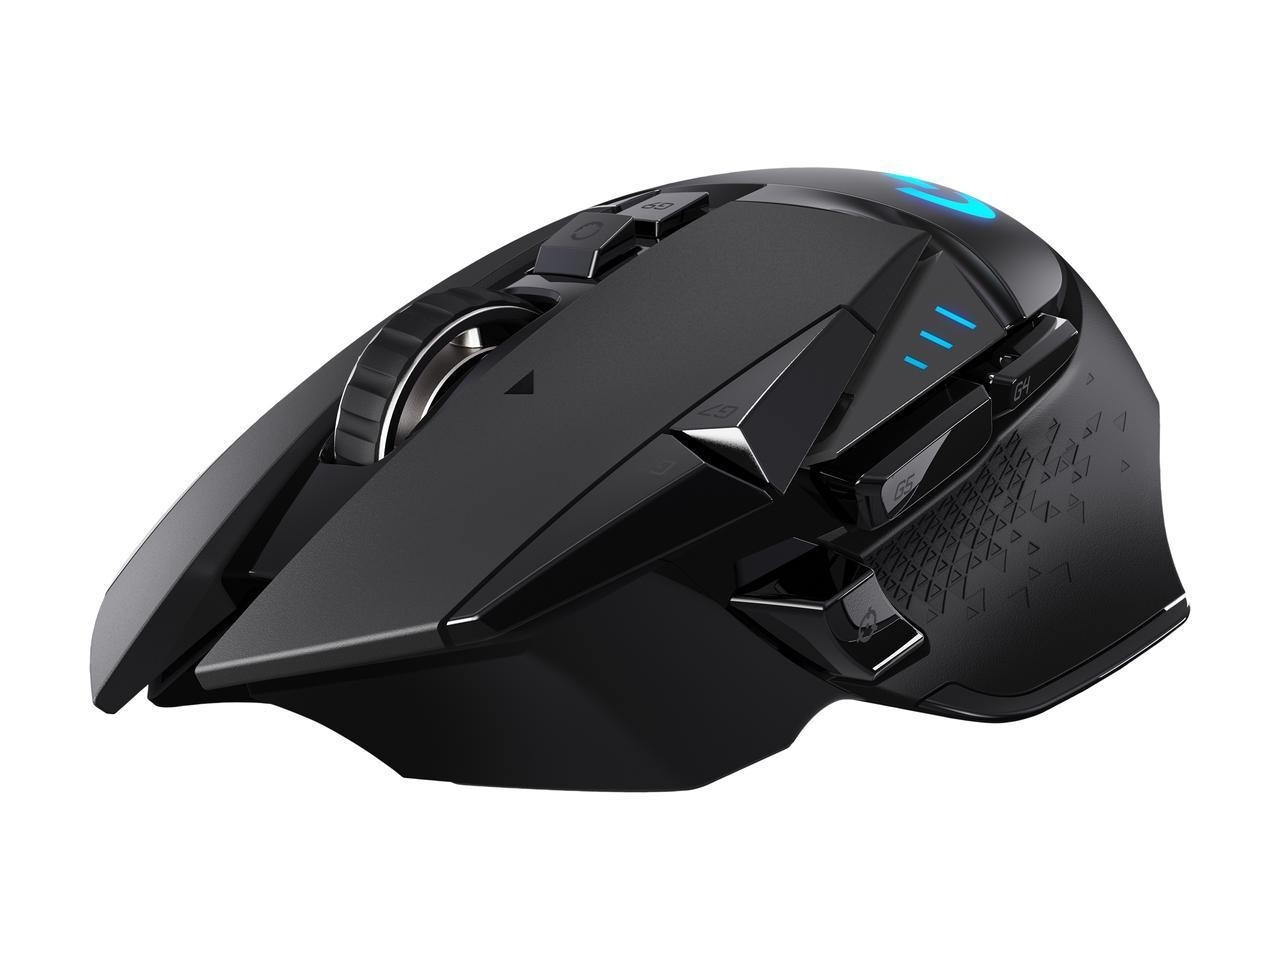 Logitech G502 LIGHTSPEED Wireless Gaming Mouse With HERO Sensor And Tunable  Weights, With Up To 16,000 Dpi, Net-gen HERO 16K Sensor, 11 Customizable